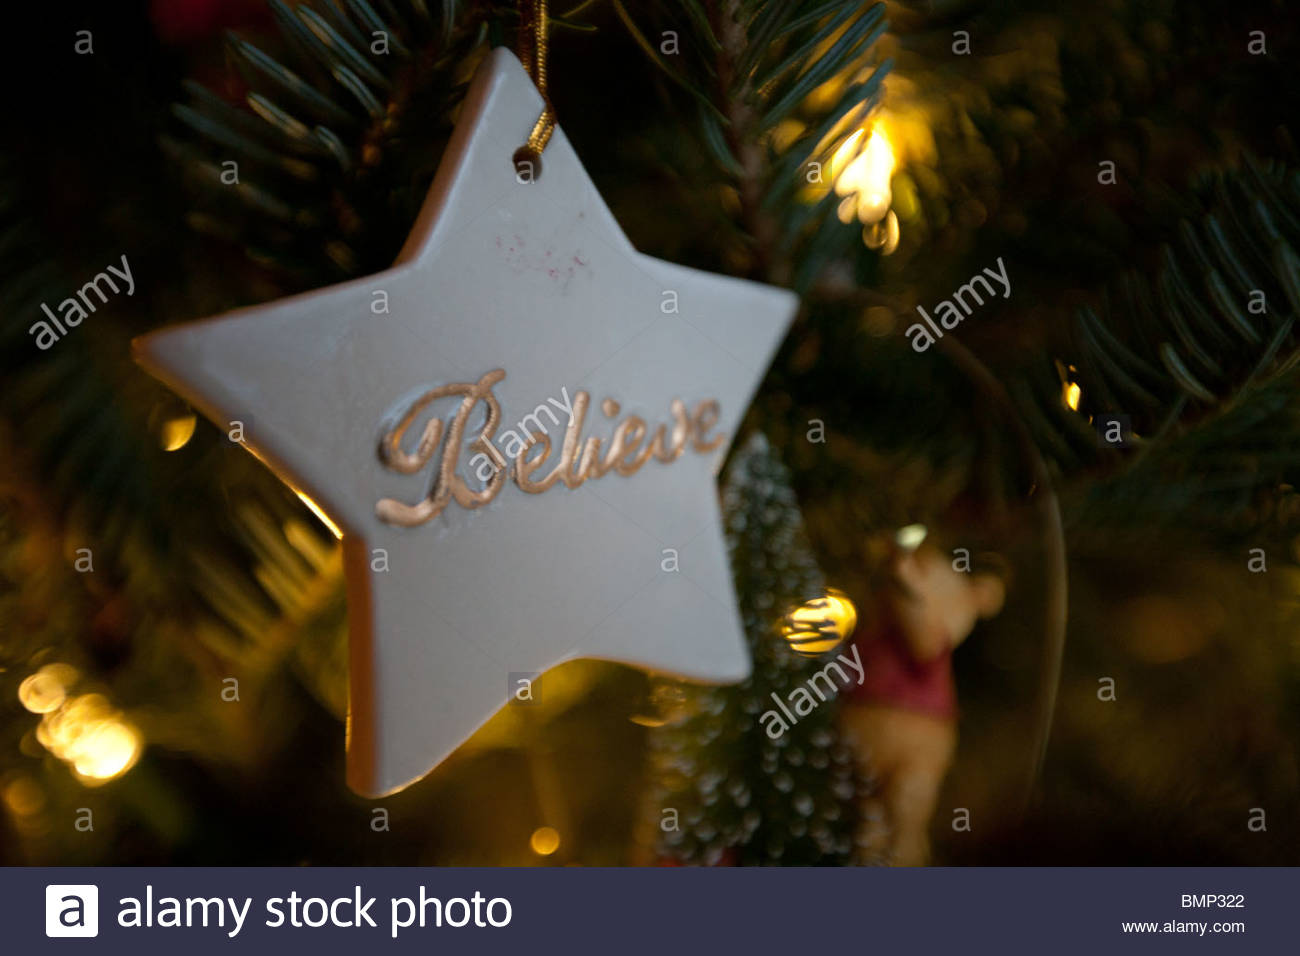 Five Pointed Star A Ceramic Christmas Tree Ornament Hanging On